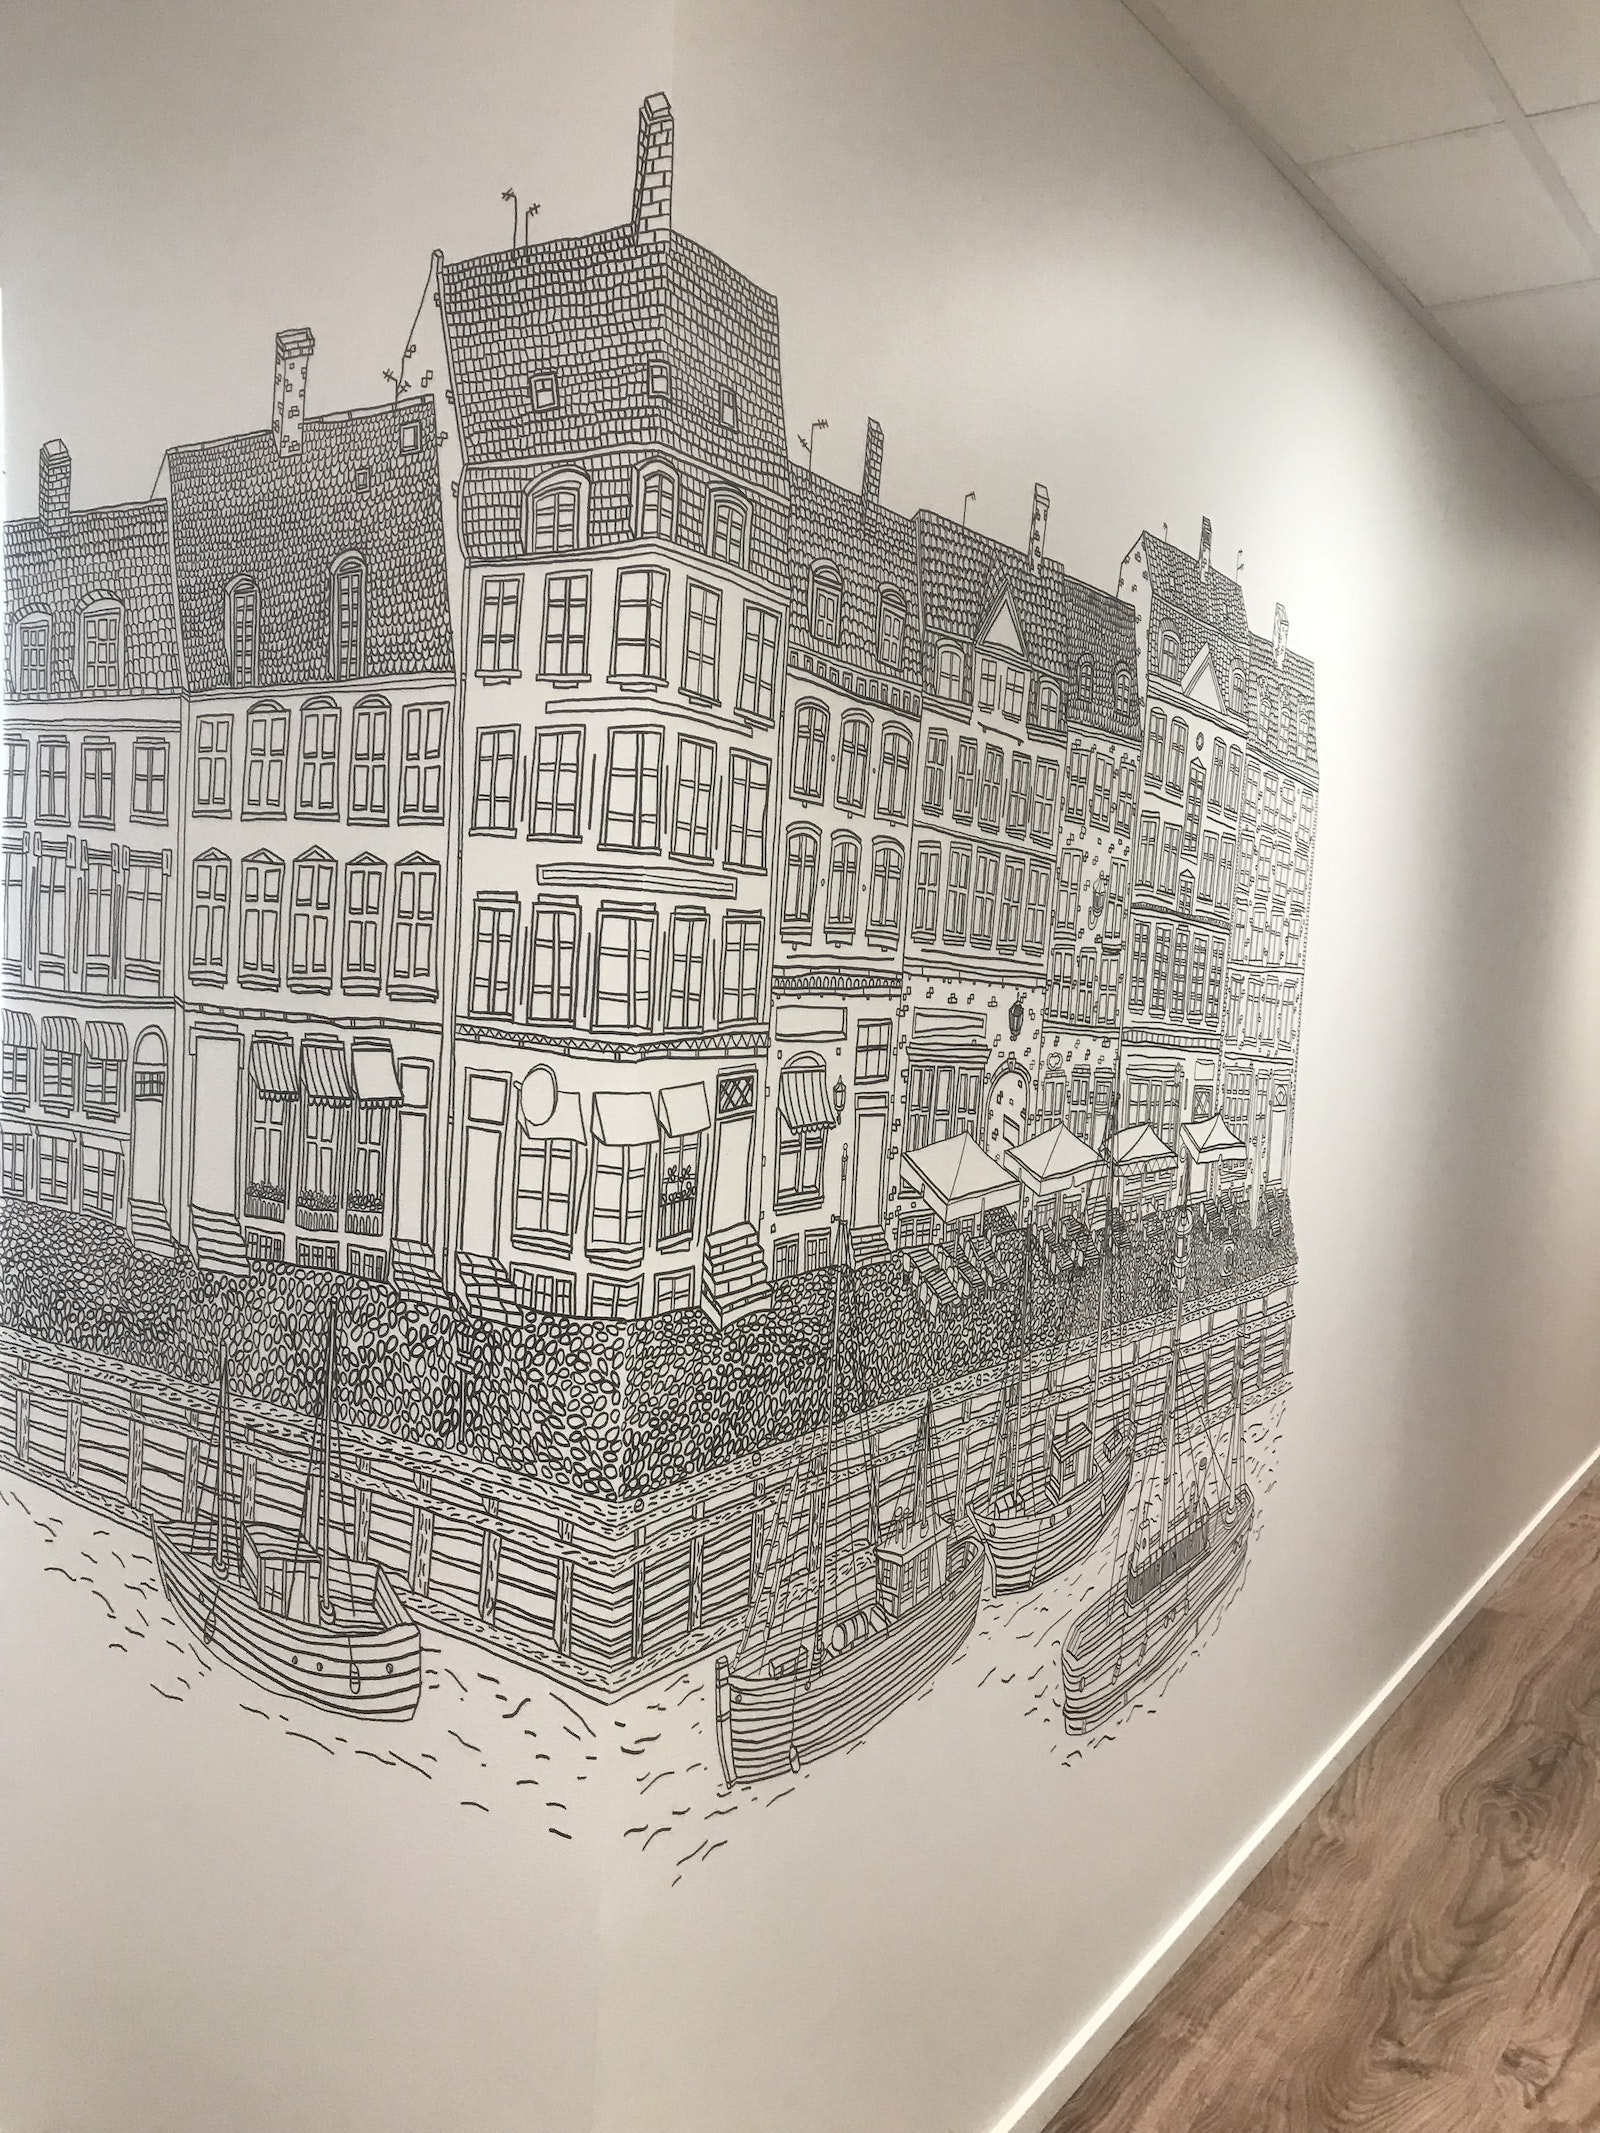 Mural at a dental clinic in Herlev by Daniel van der Noon